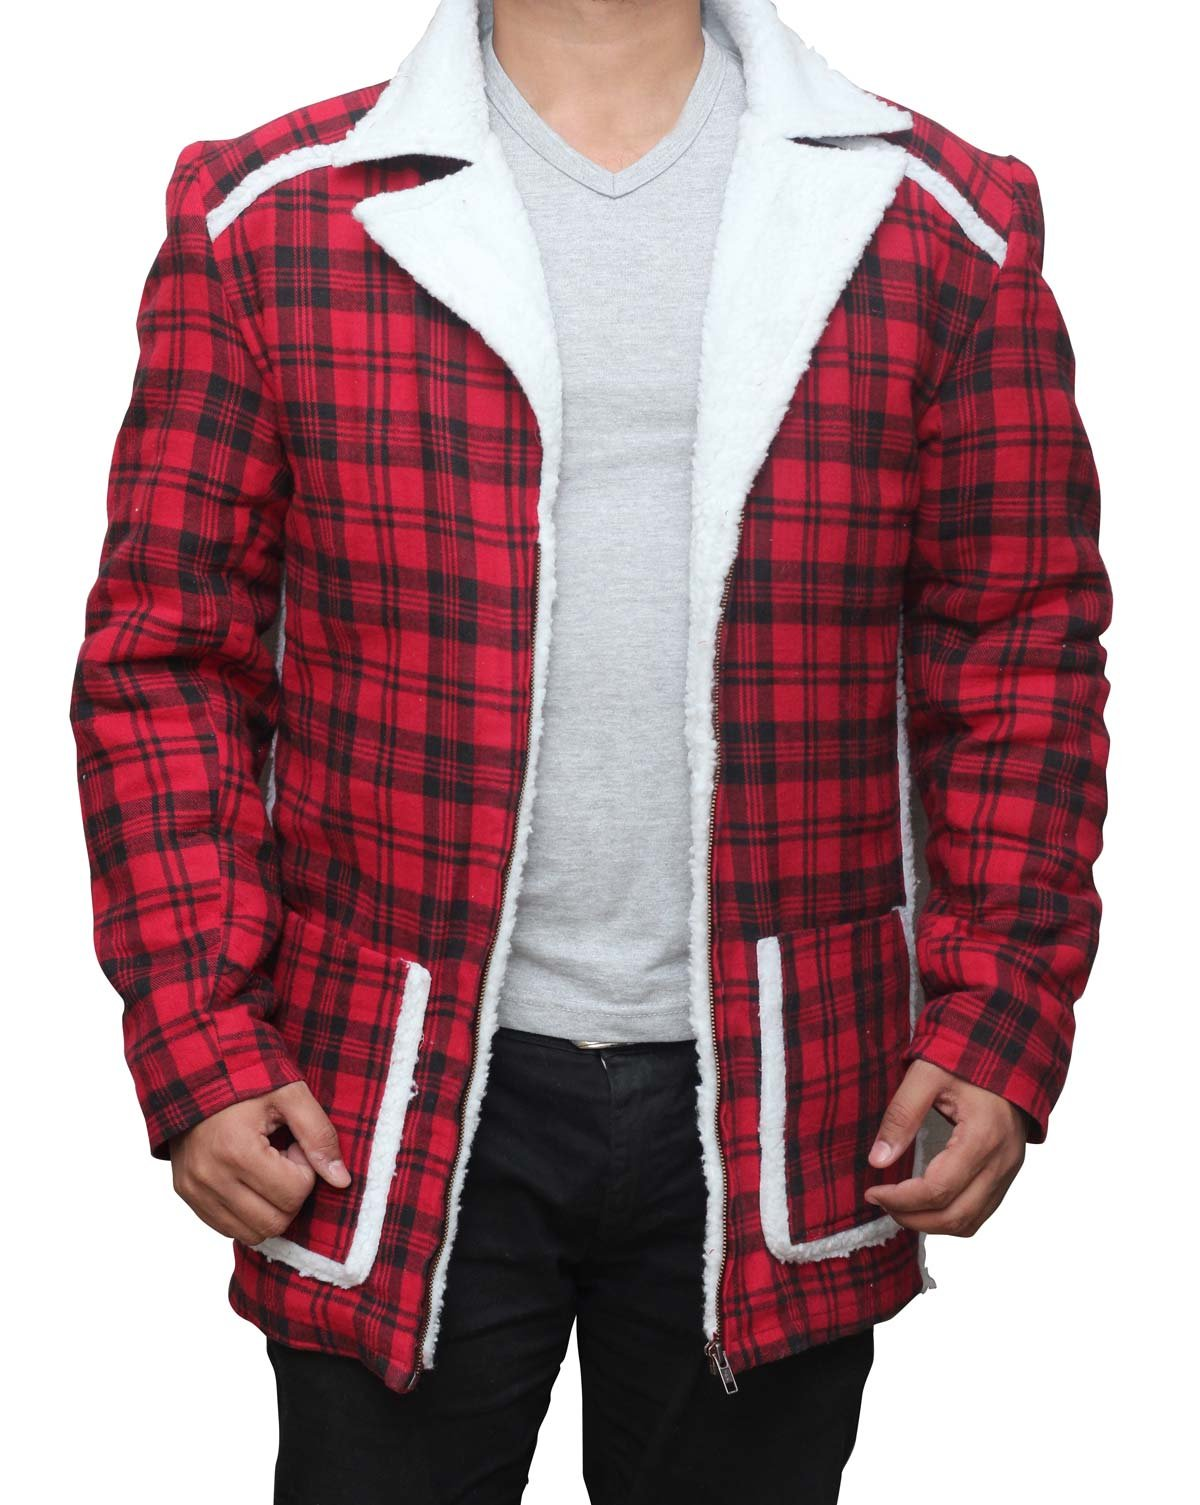 Deadpool Ryan Reynolds Red cotton flannel Shearling Jacket 3XL by fjackets (Image #2)